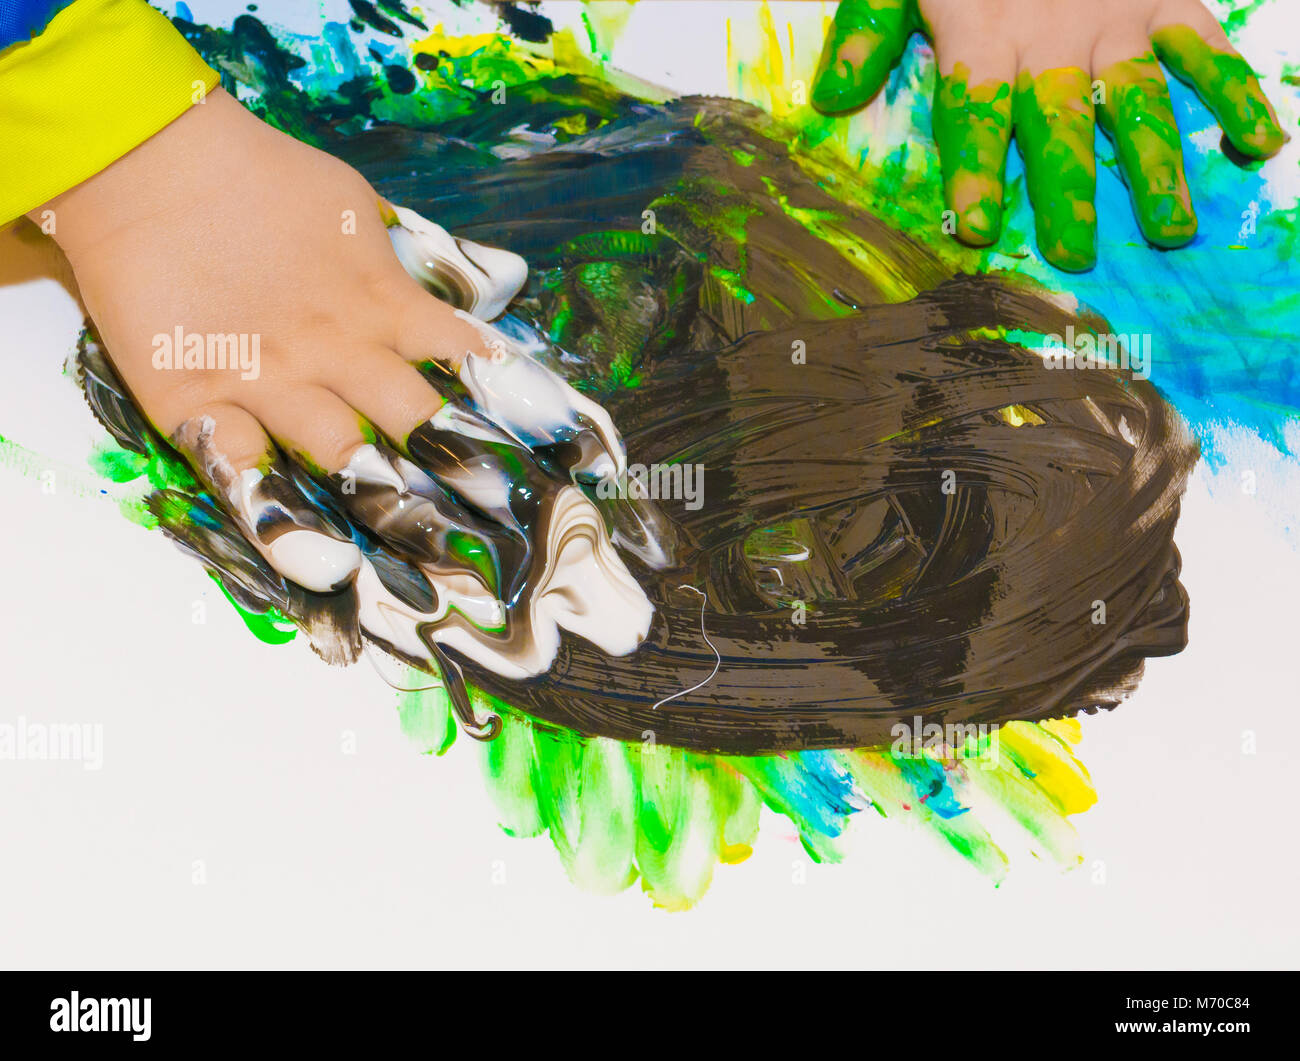 Child hands painted in colorful paints. Education, school, creativity and painting concept. Soft focus an blurry - Stock Image